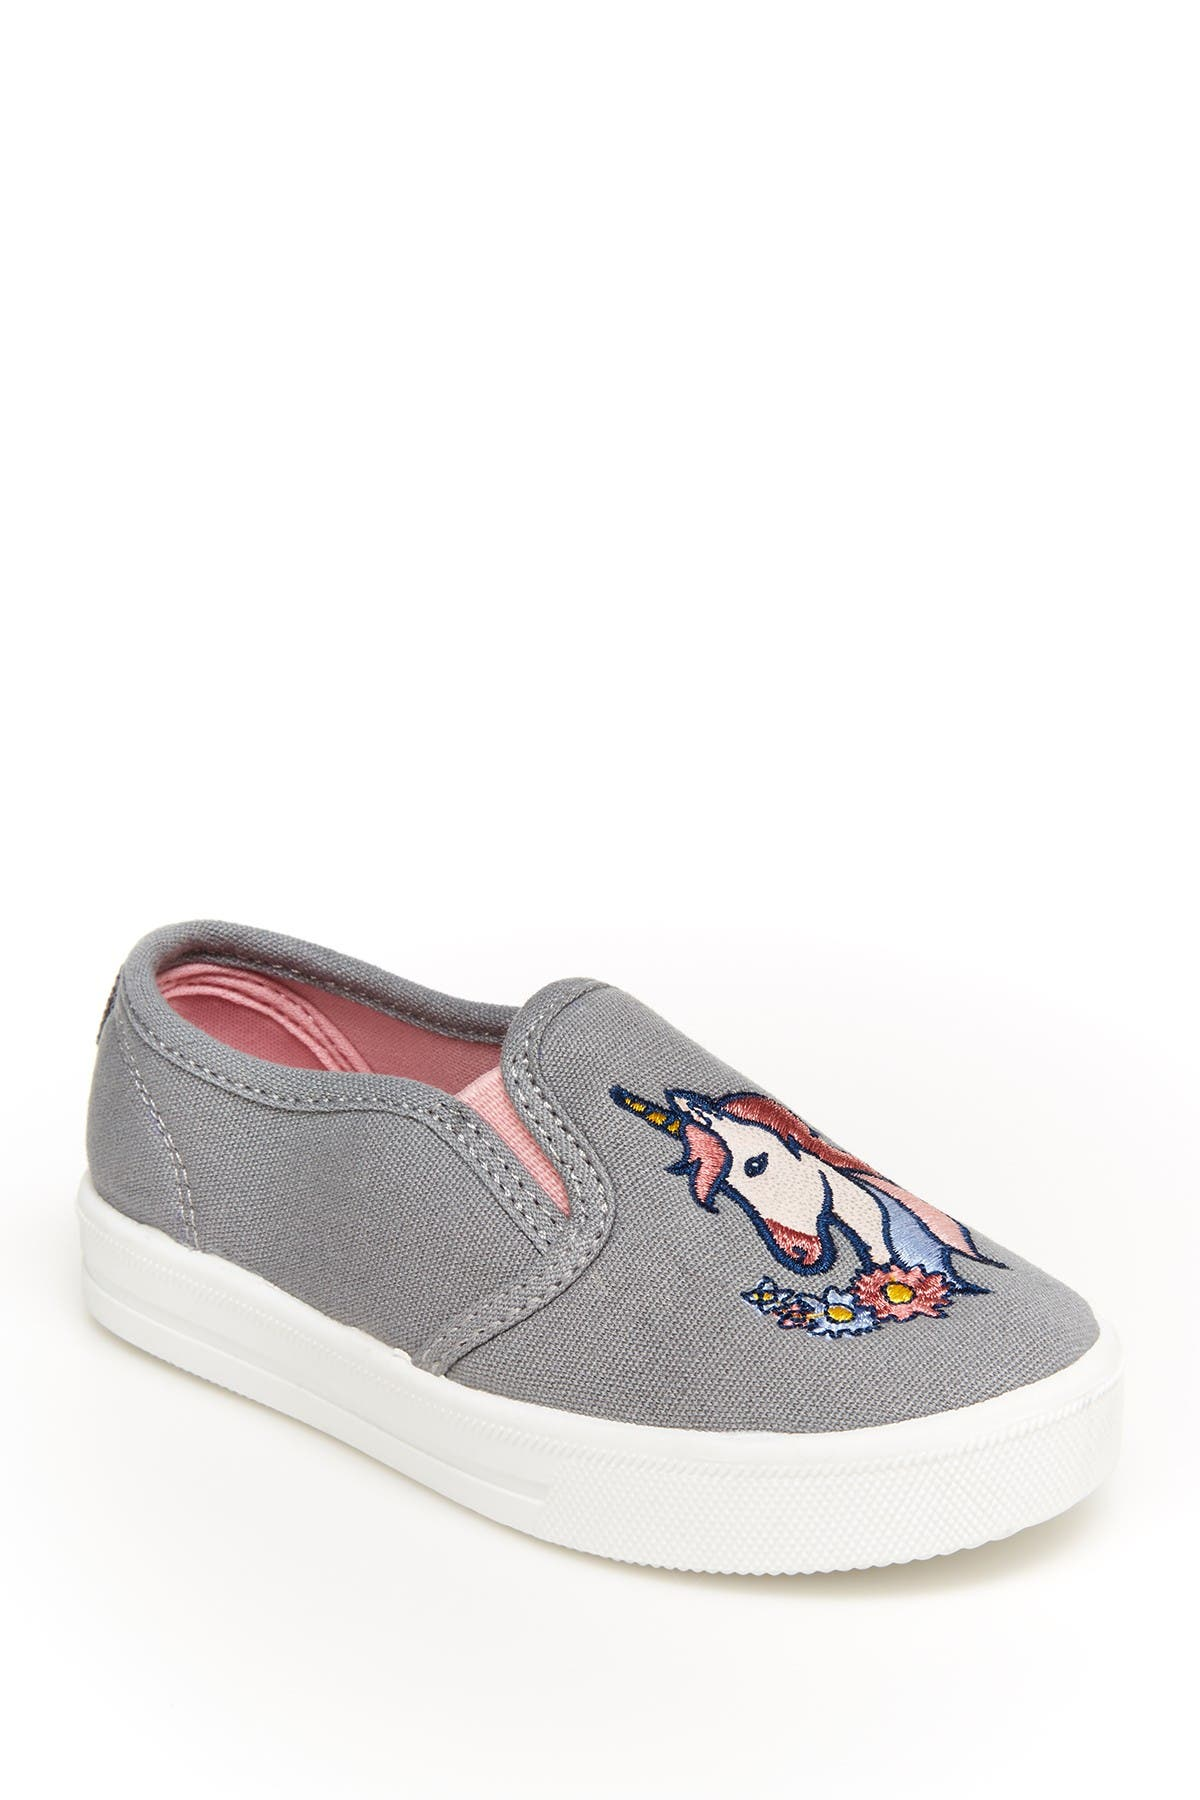 Image of OshKosh Maeve Slip-On Sneaker